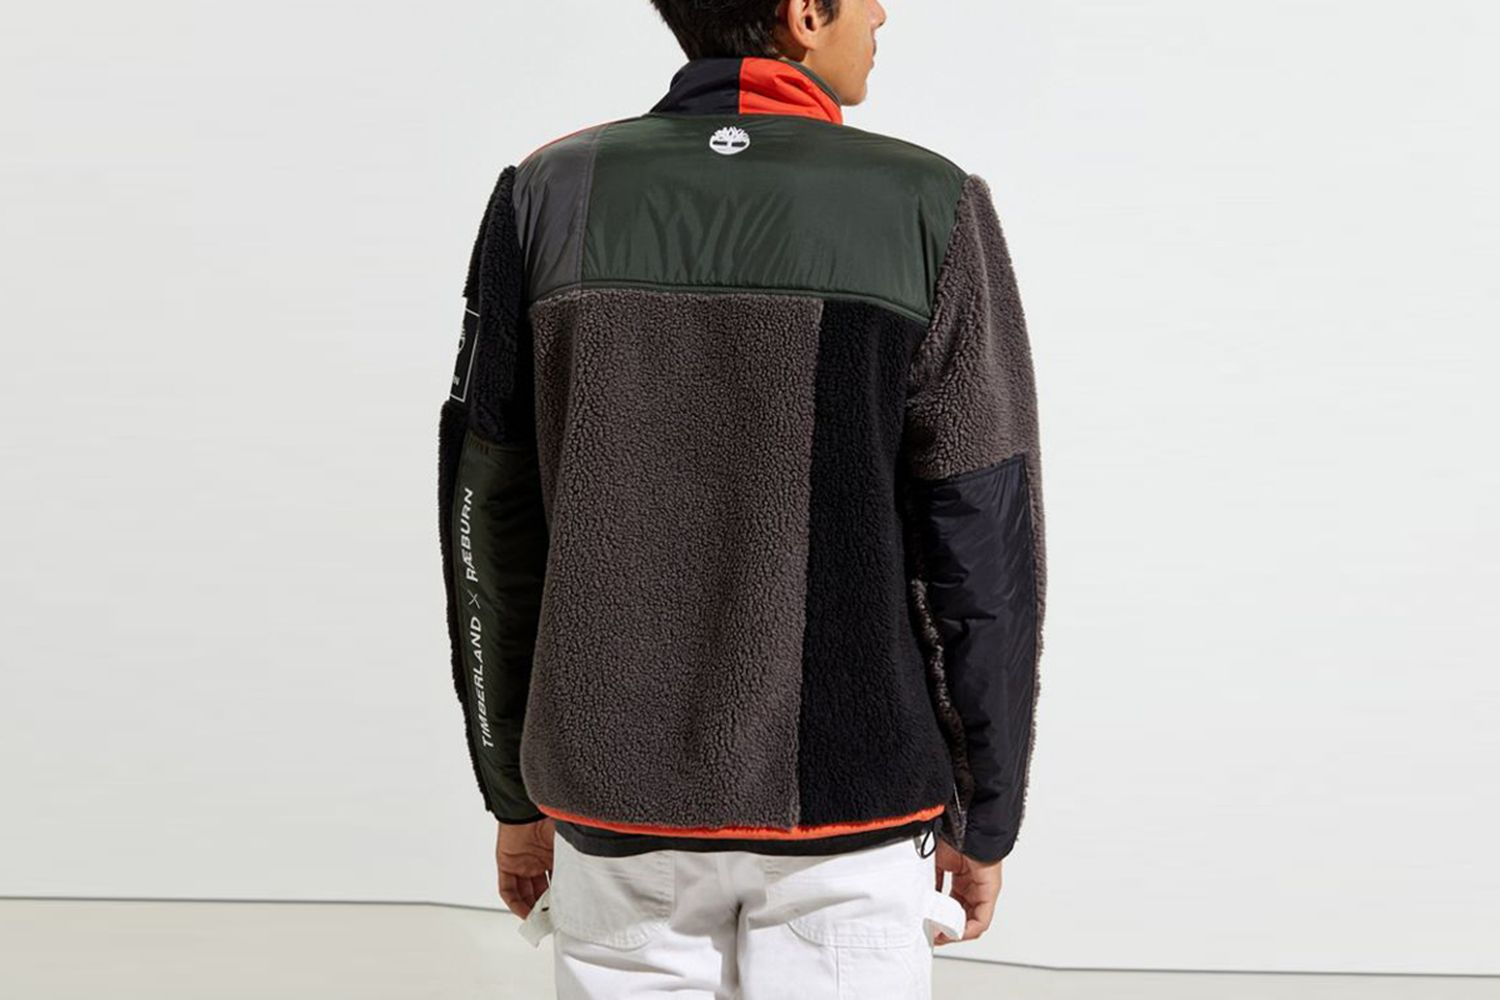 Full-Zip Sherpa Fleece Jacket